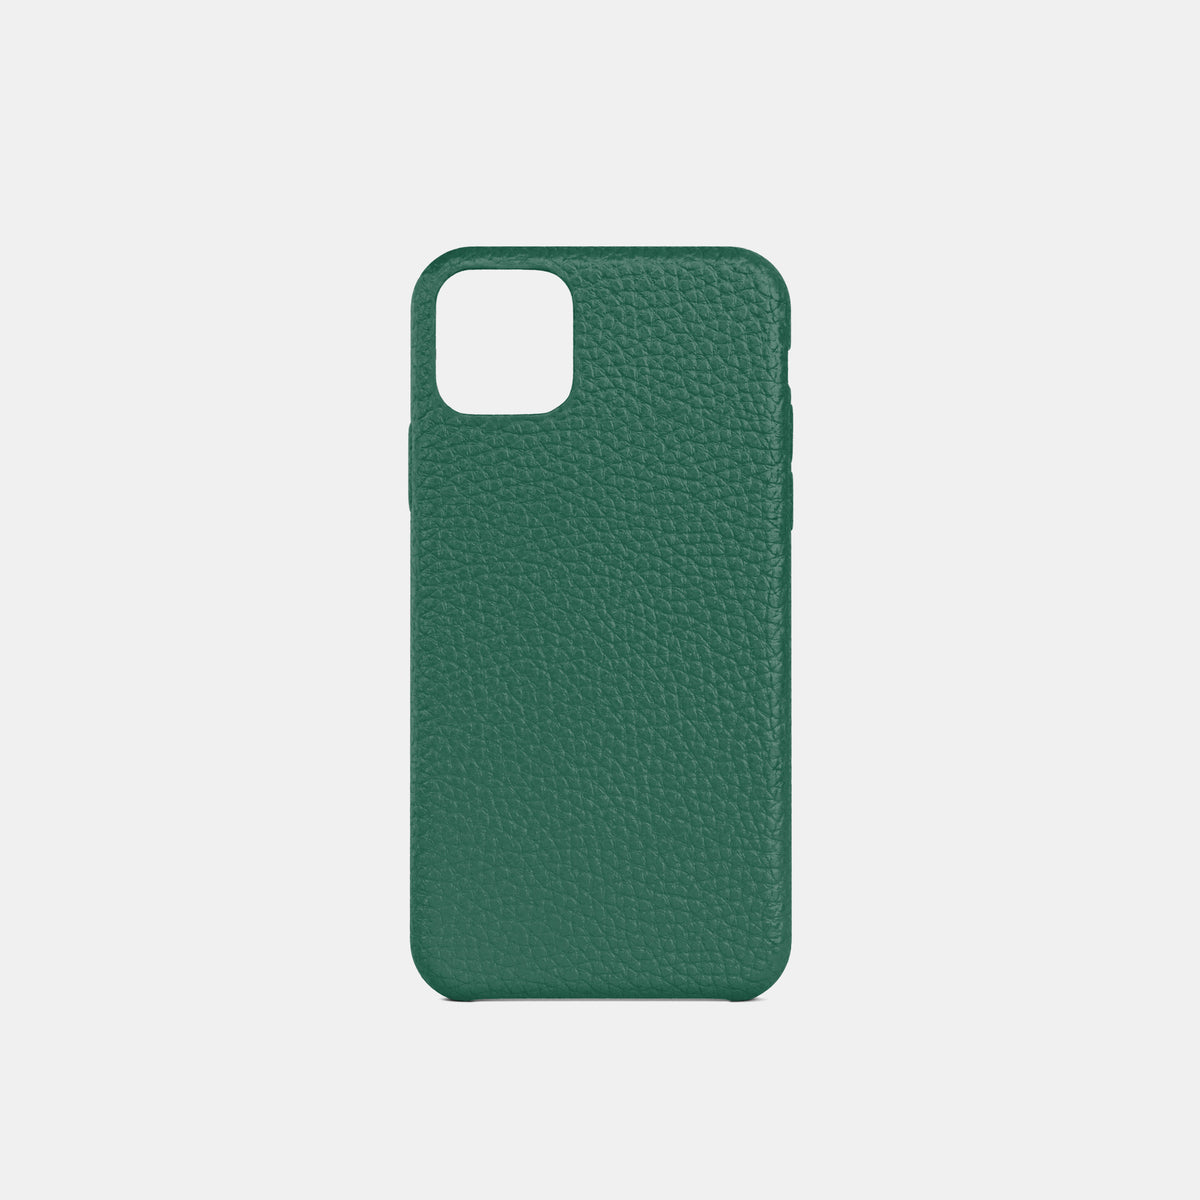 iPhone Leather Shell Case - Avocado Green - RYAN London